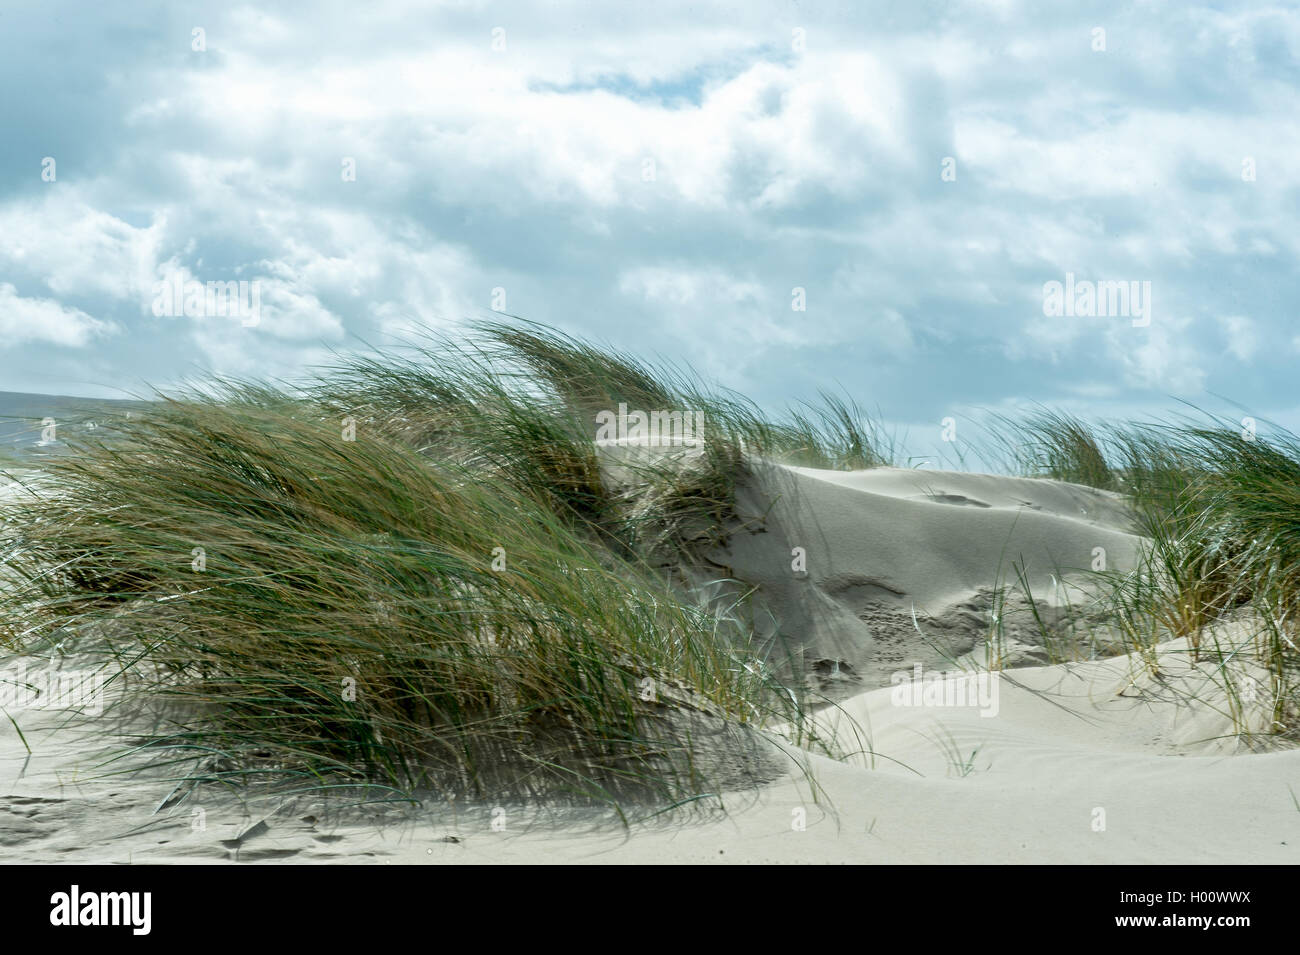 Sand dune in the wind - Stock Image